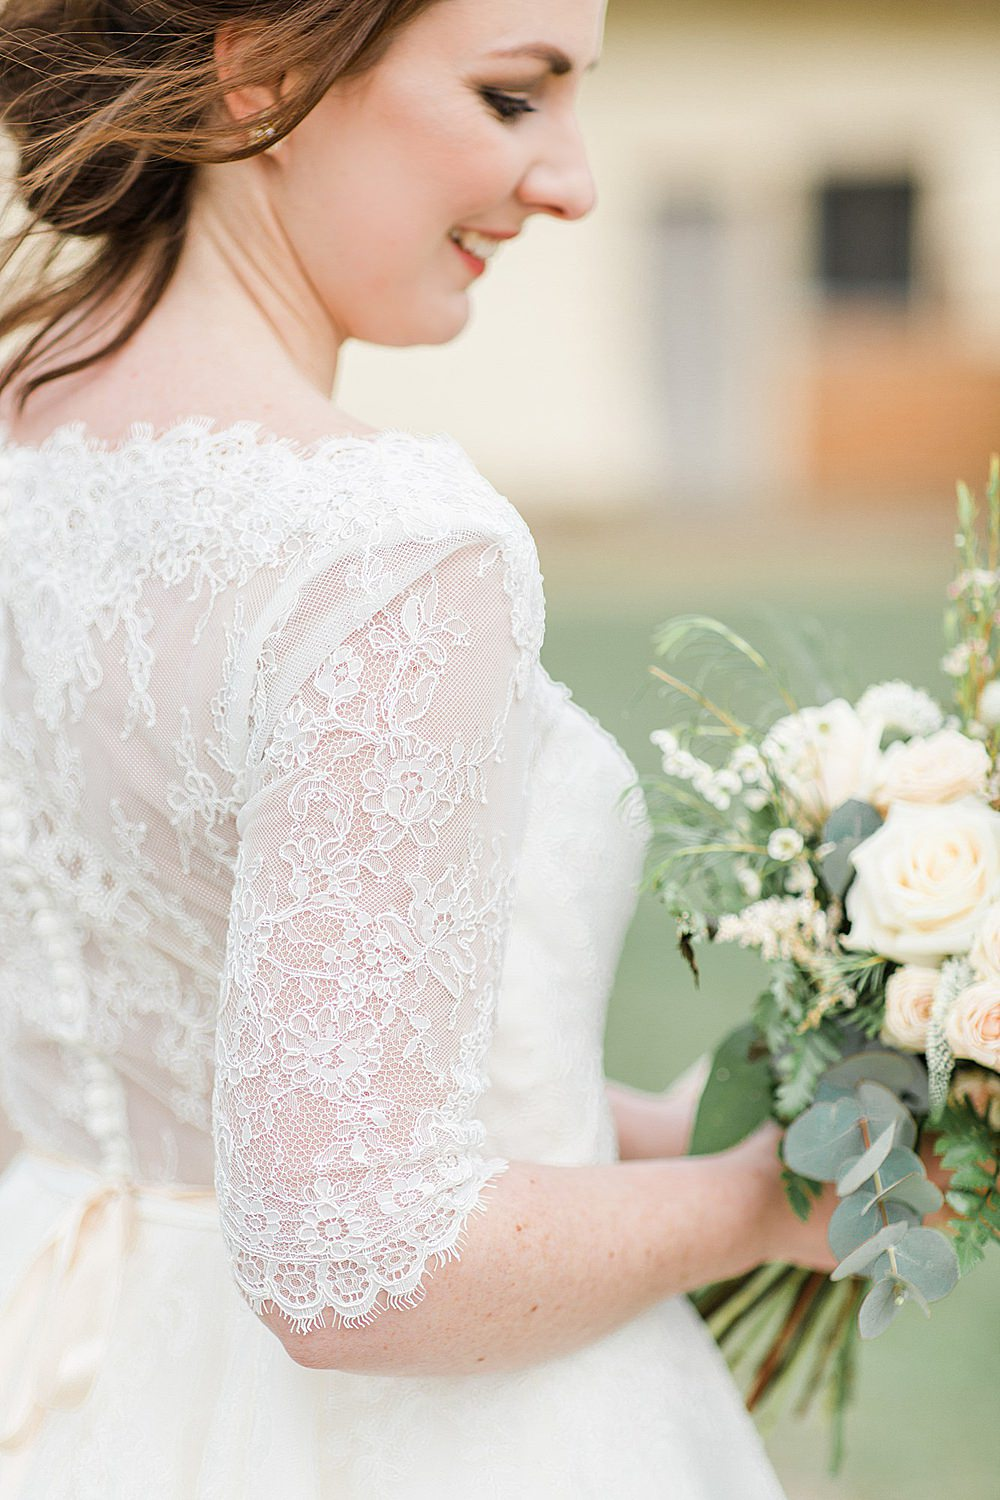 Dress Gown Bride Bridal Lace Tea Length Short Sleeves Button Back Chiltern Open Air Museum Wedding Terri & Lori Fine Art Photography